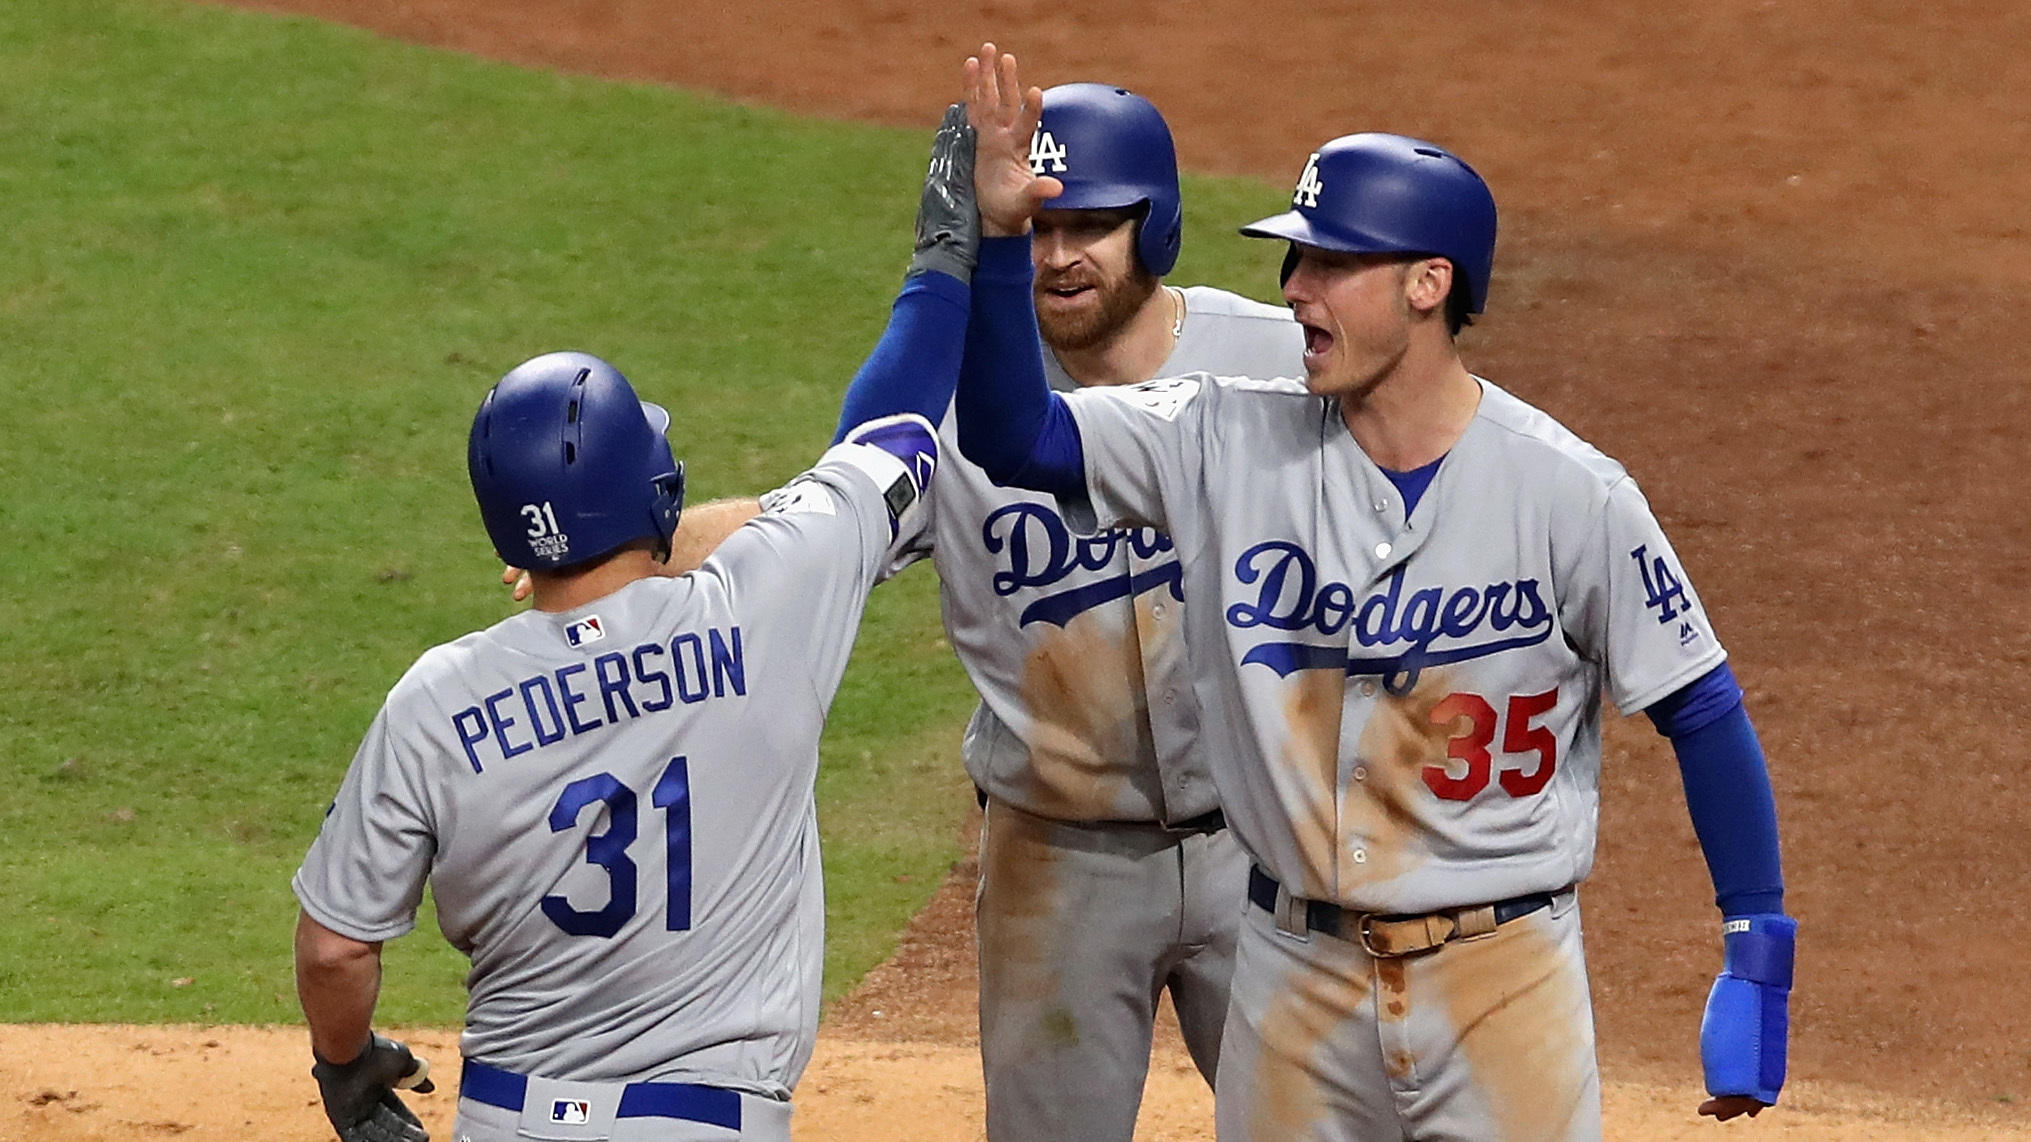 The Dodgers and Astros have had remarkably similar seasons recommend